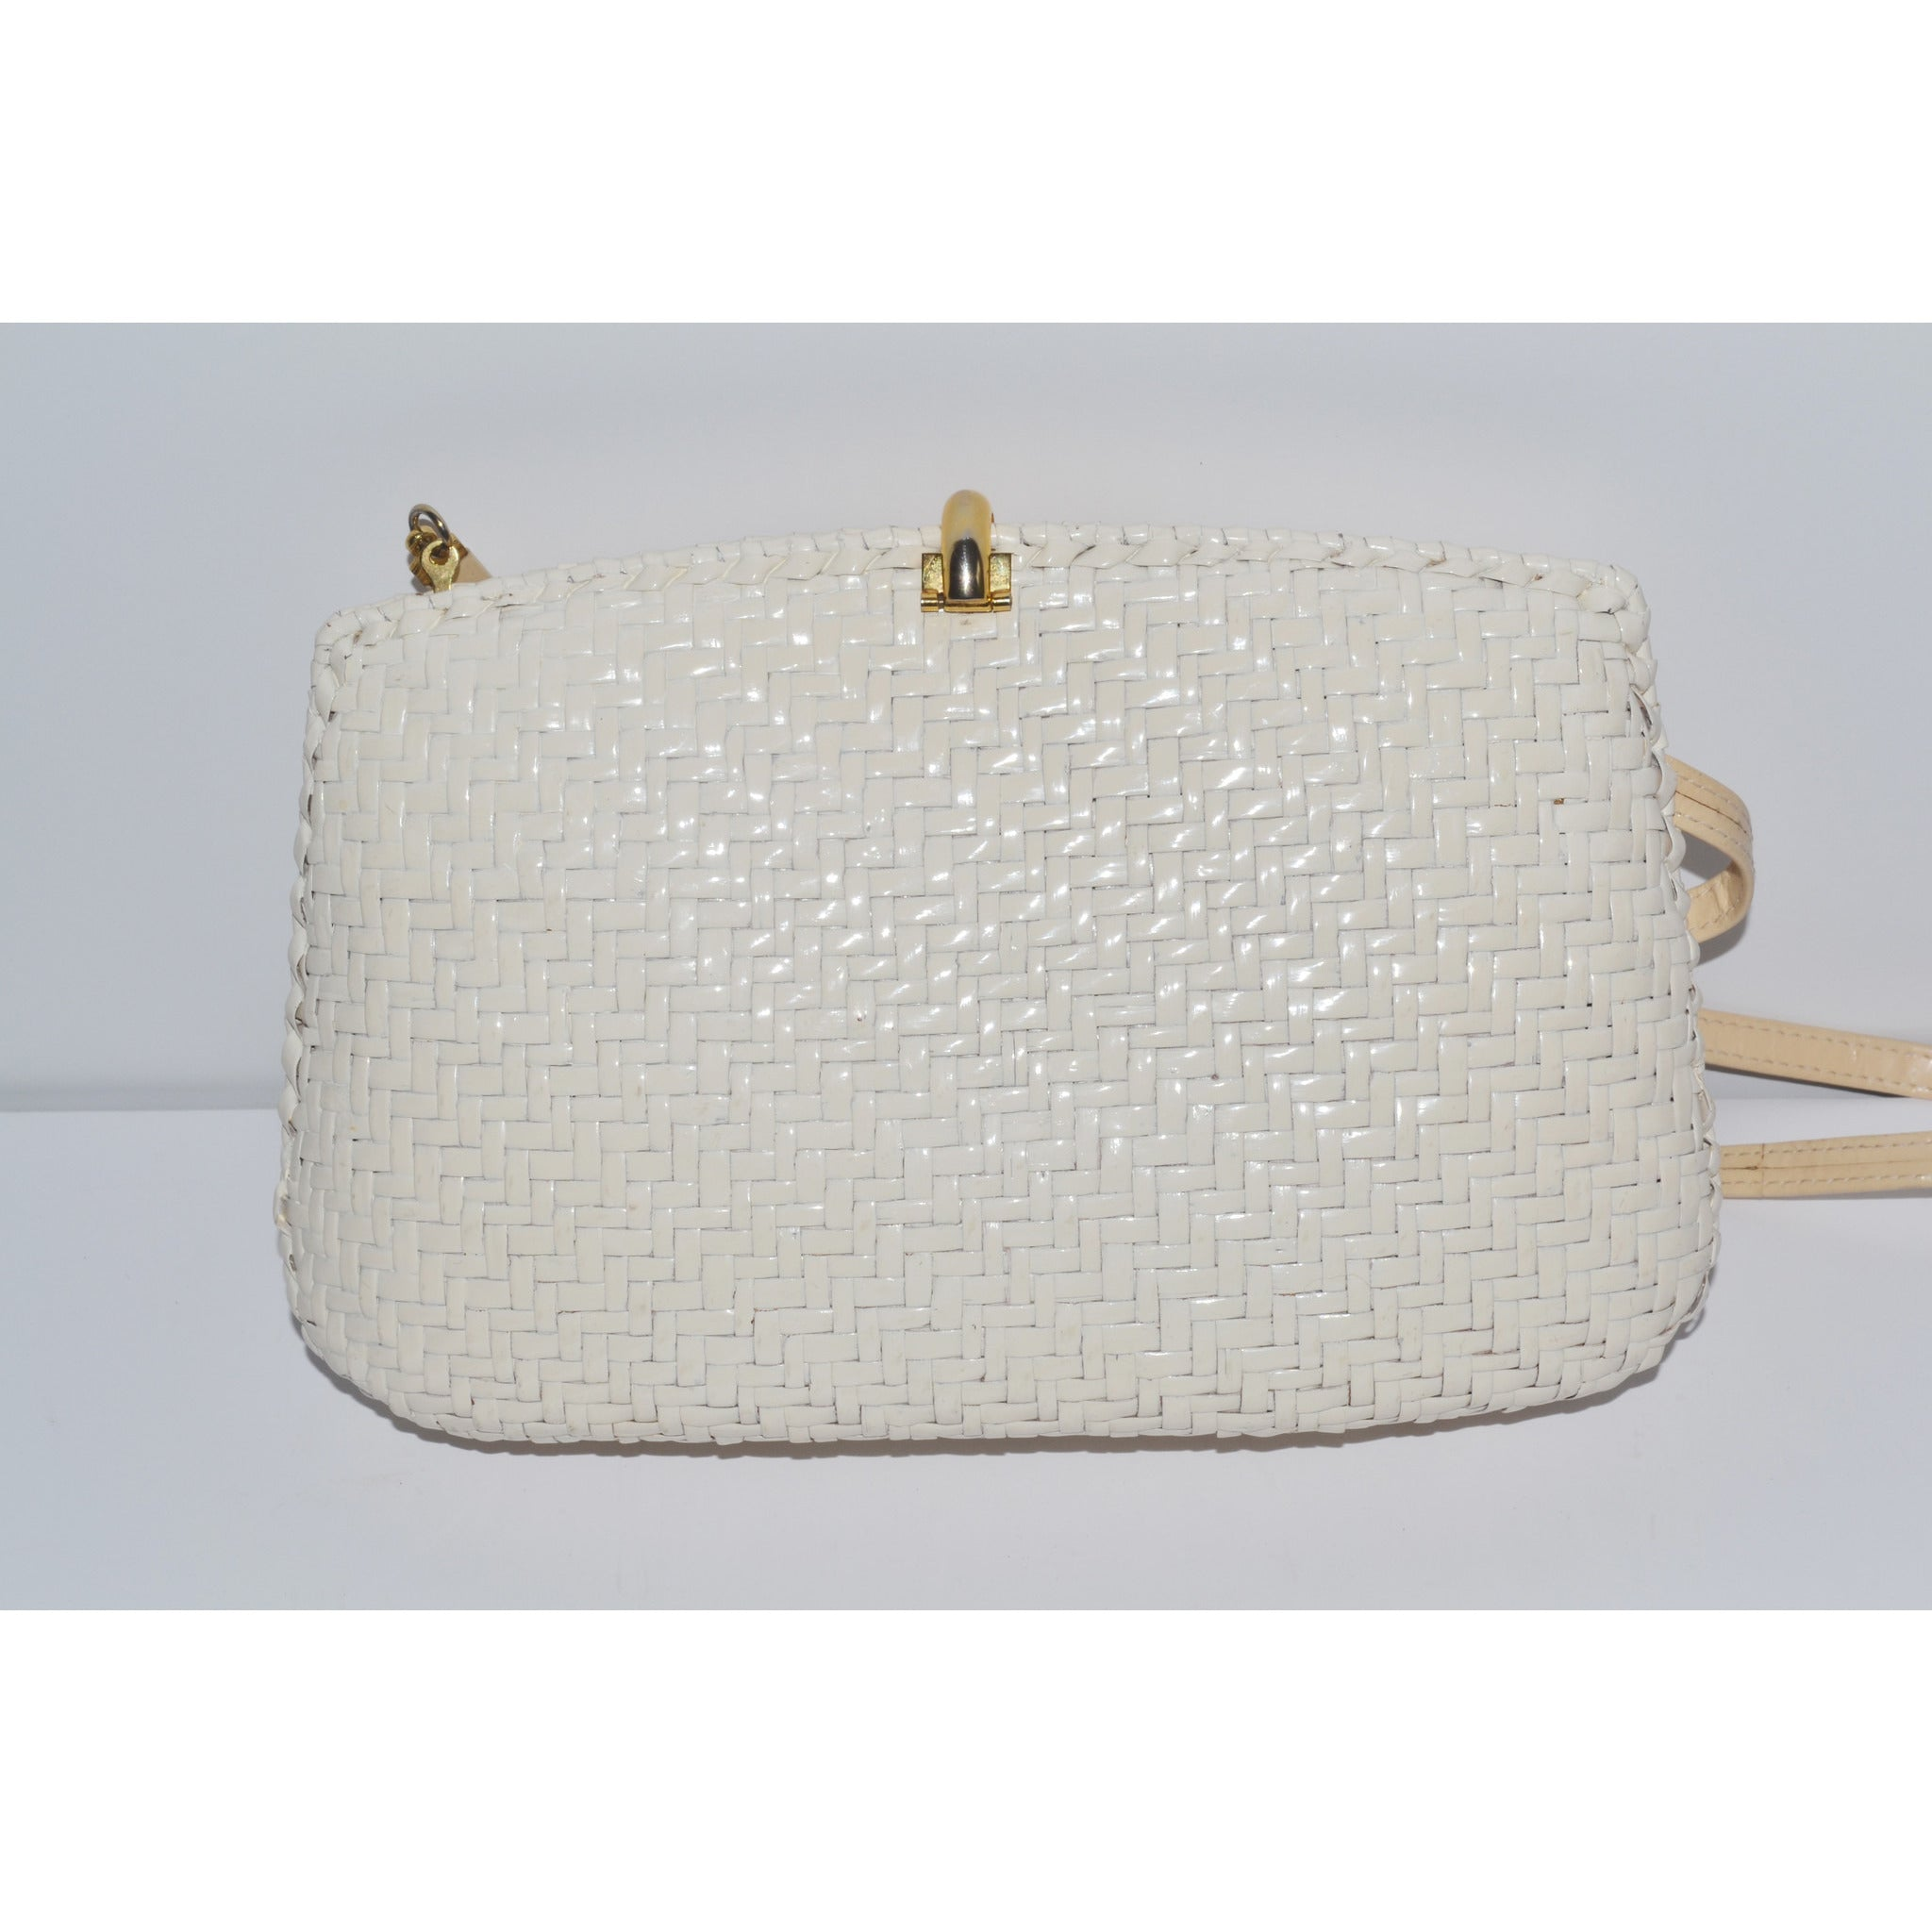 Vintage Glazed White Wicker Purse By Rodo